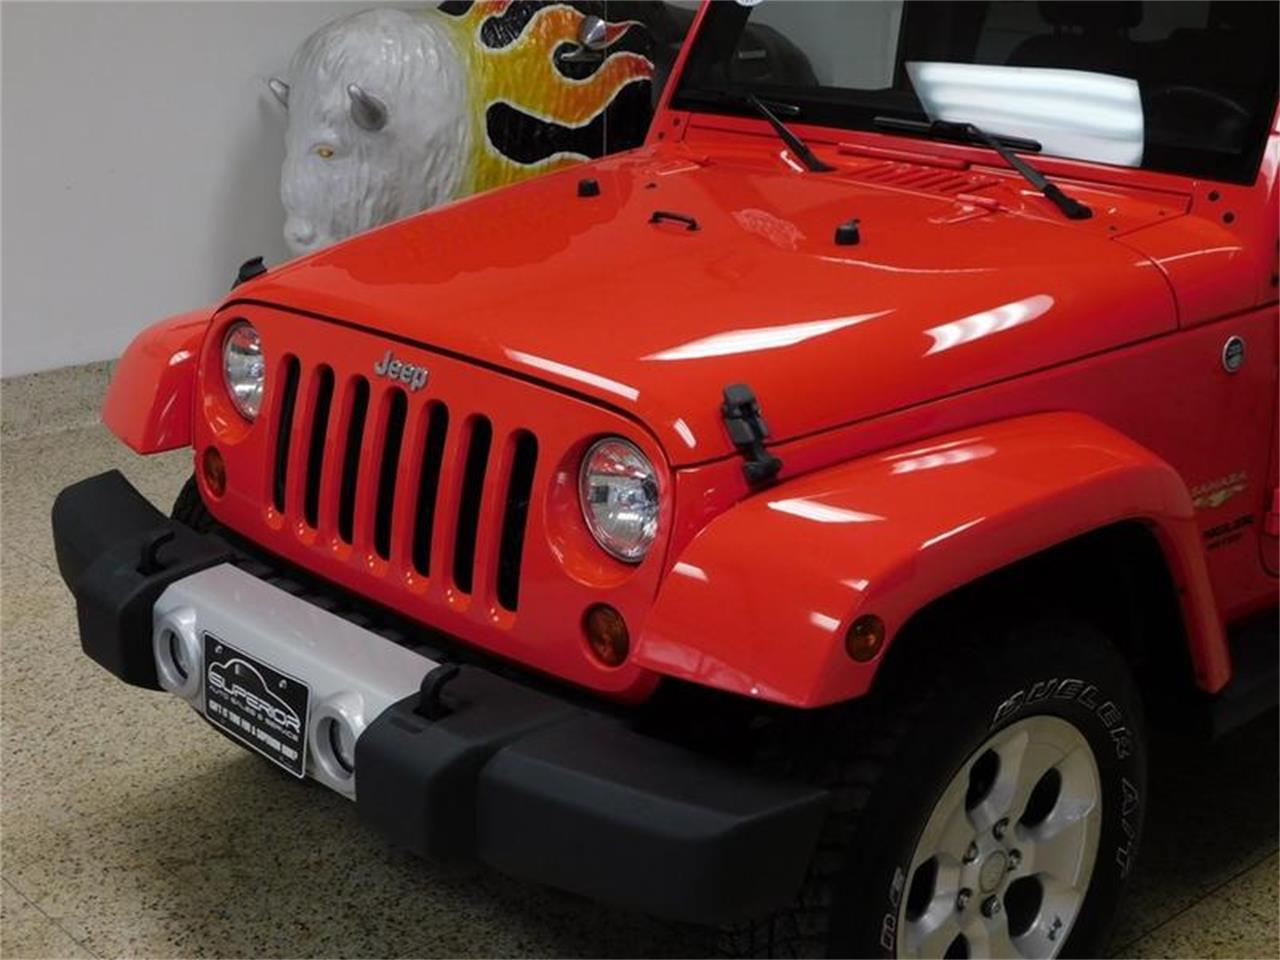 2013 Jeep Wrangler for sale in Hamburg, NY – photo 74